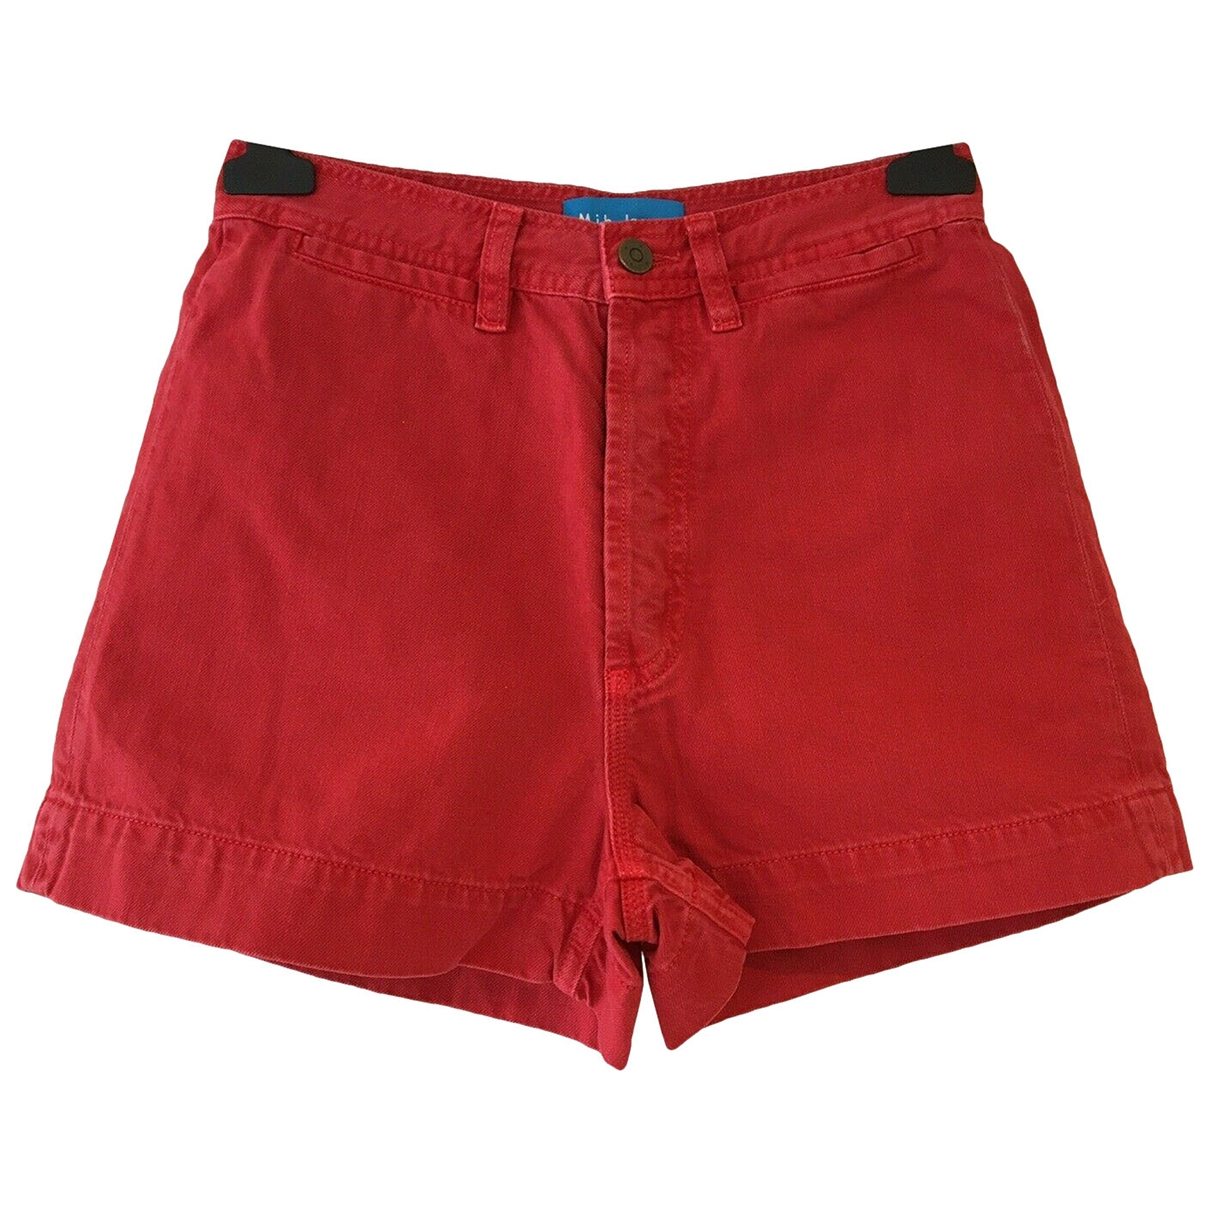 Short Mih Jeans